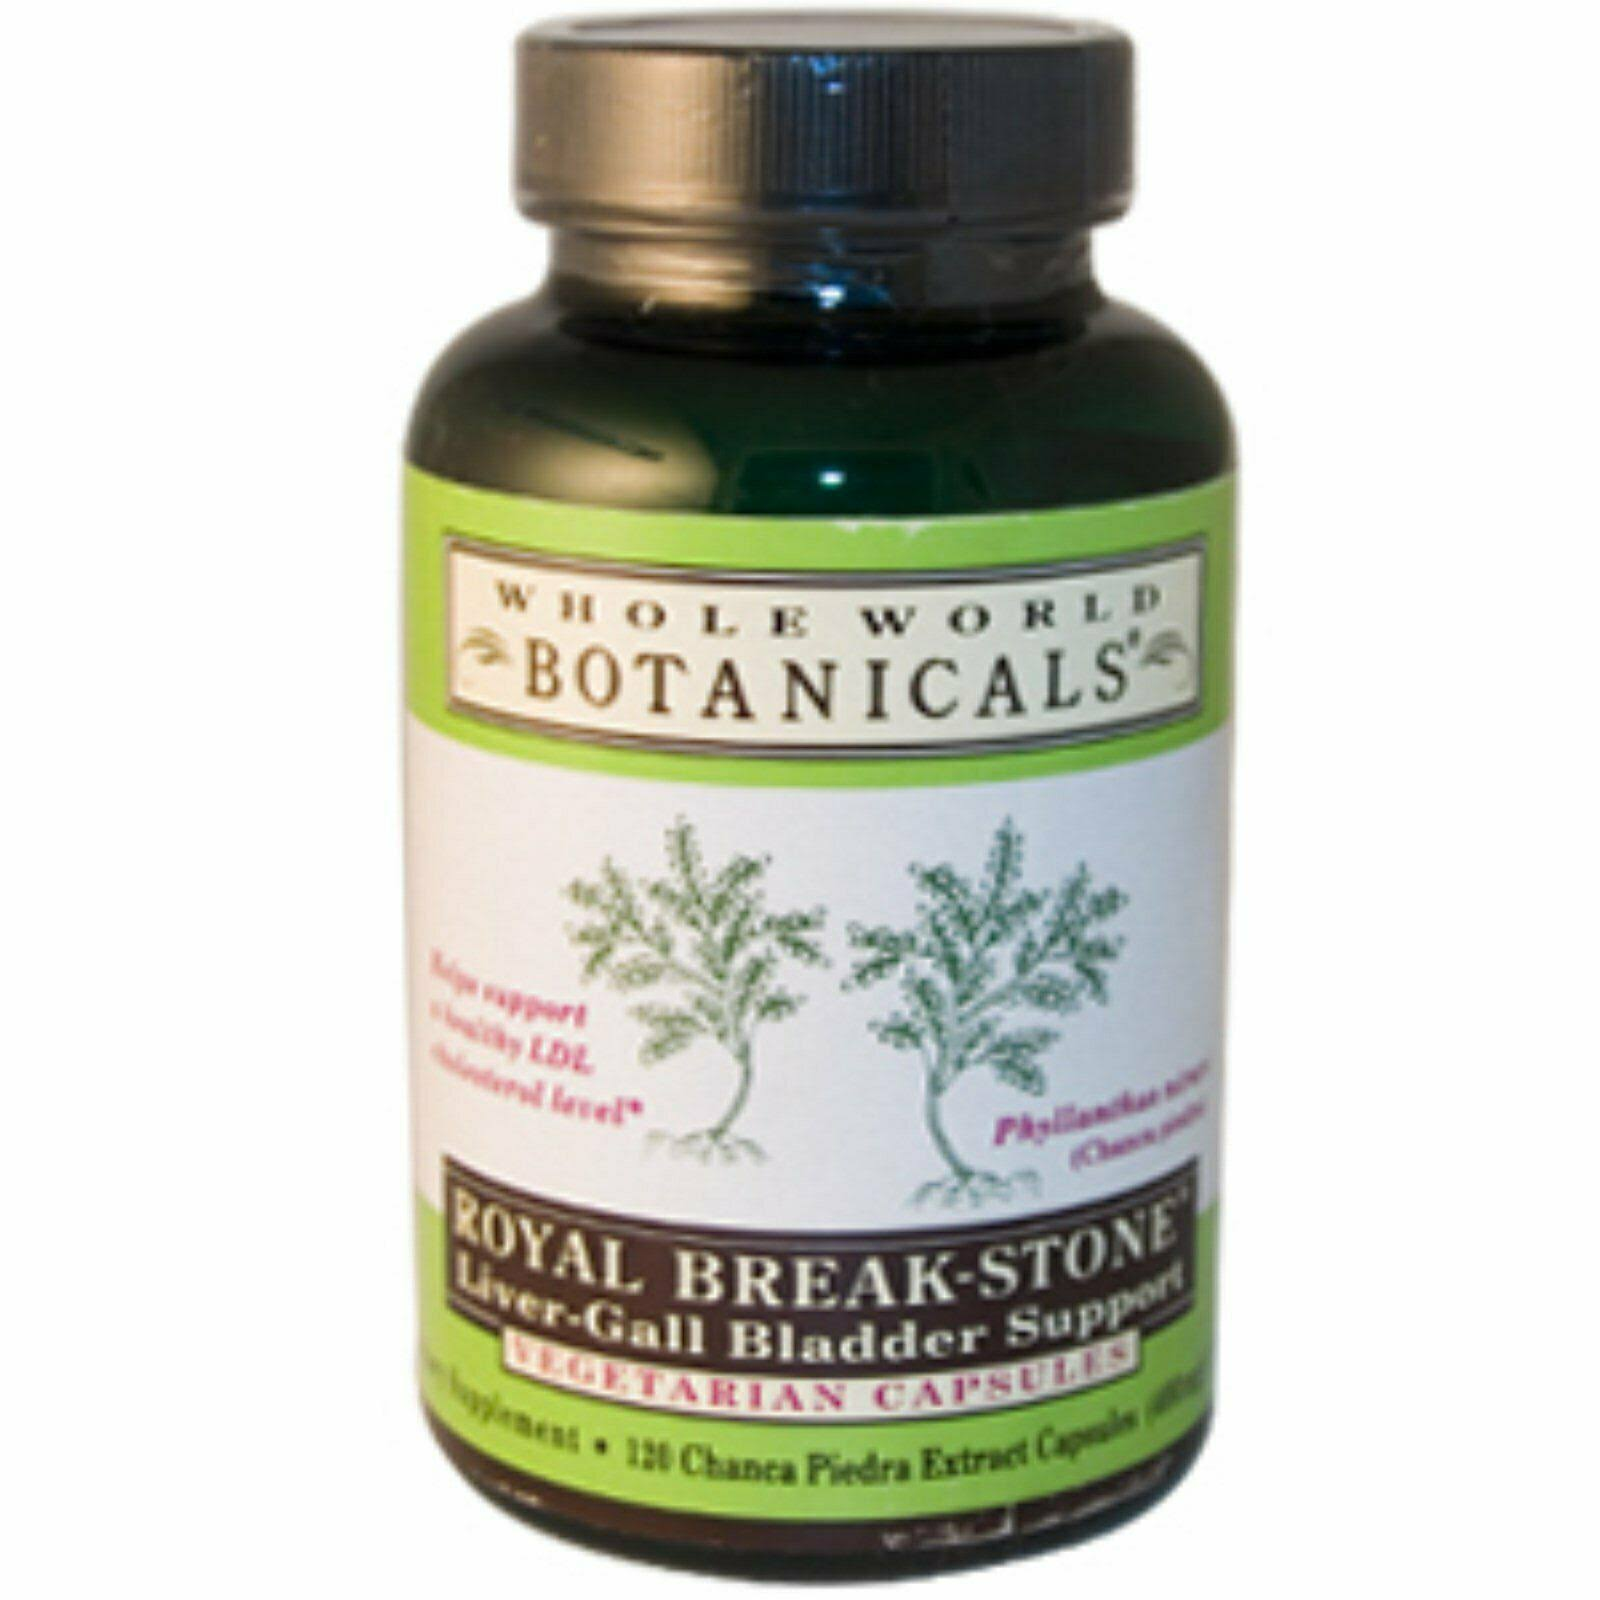 Whole World Botanicals Royal Break Stone Liver Gall Bladder Support - 400mg, 120ct